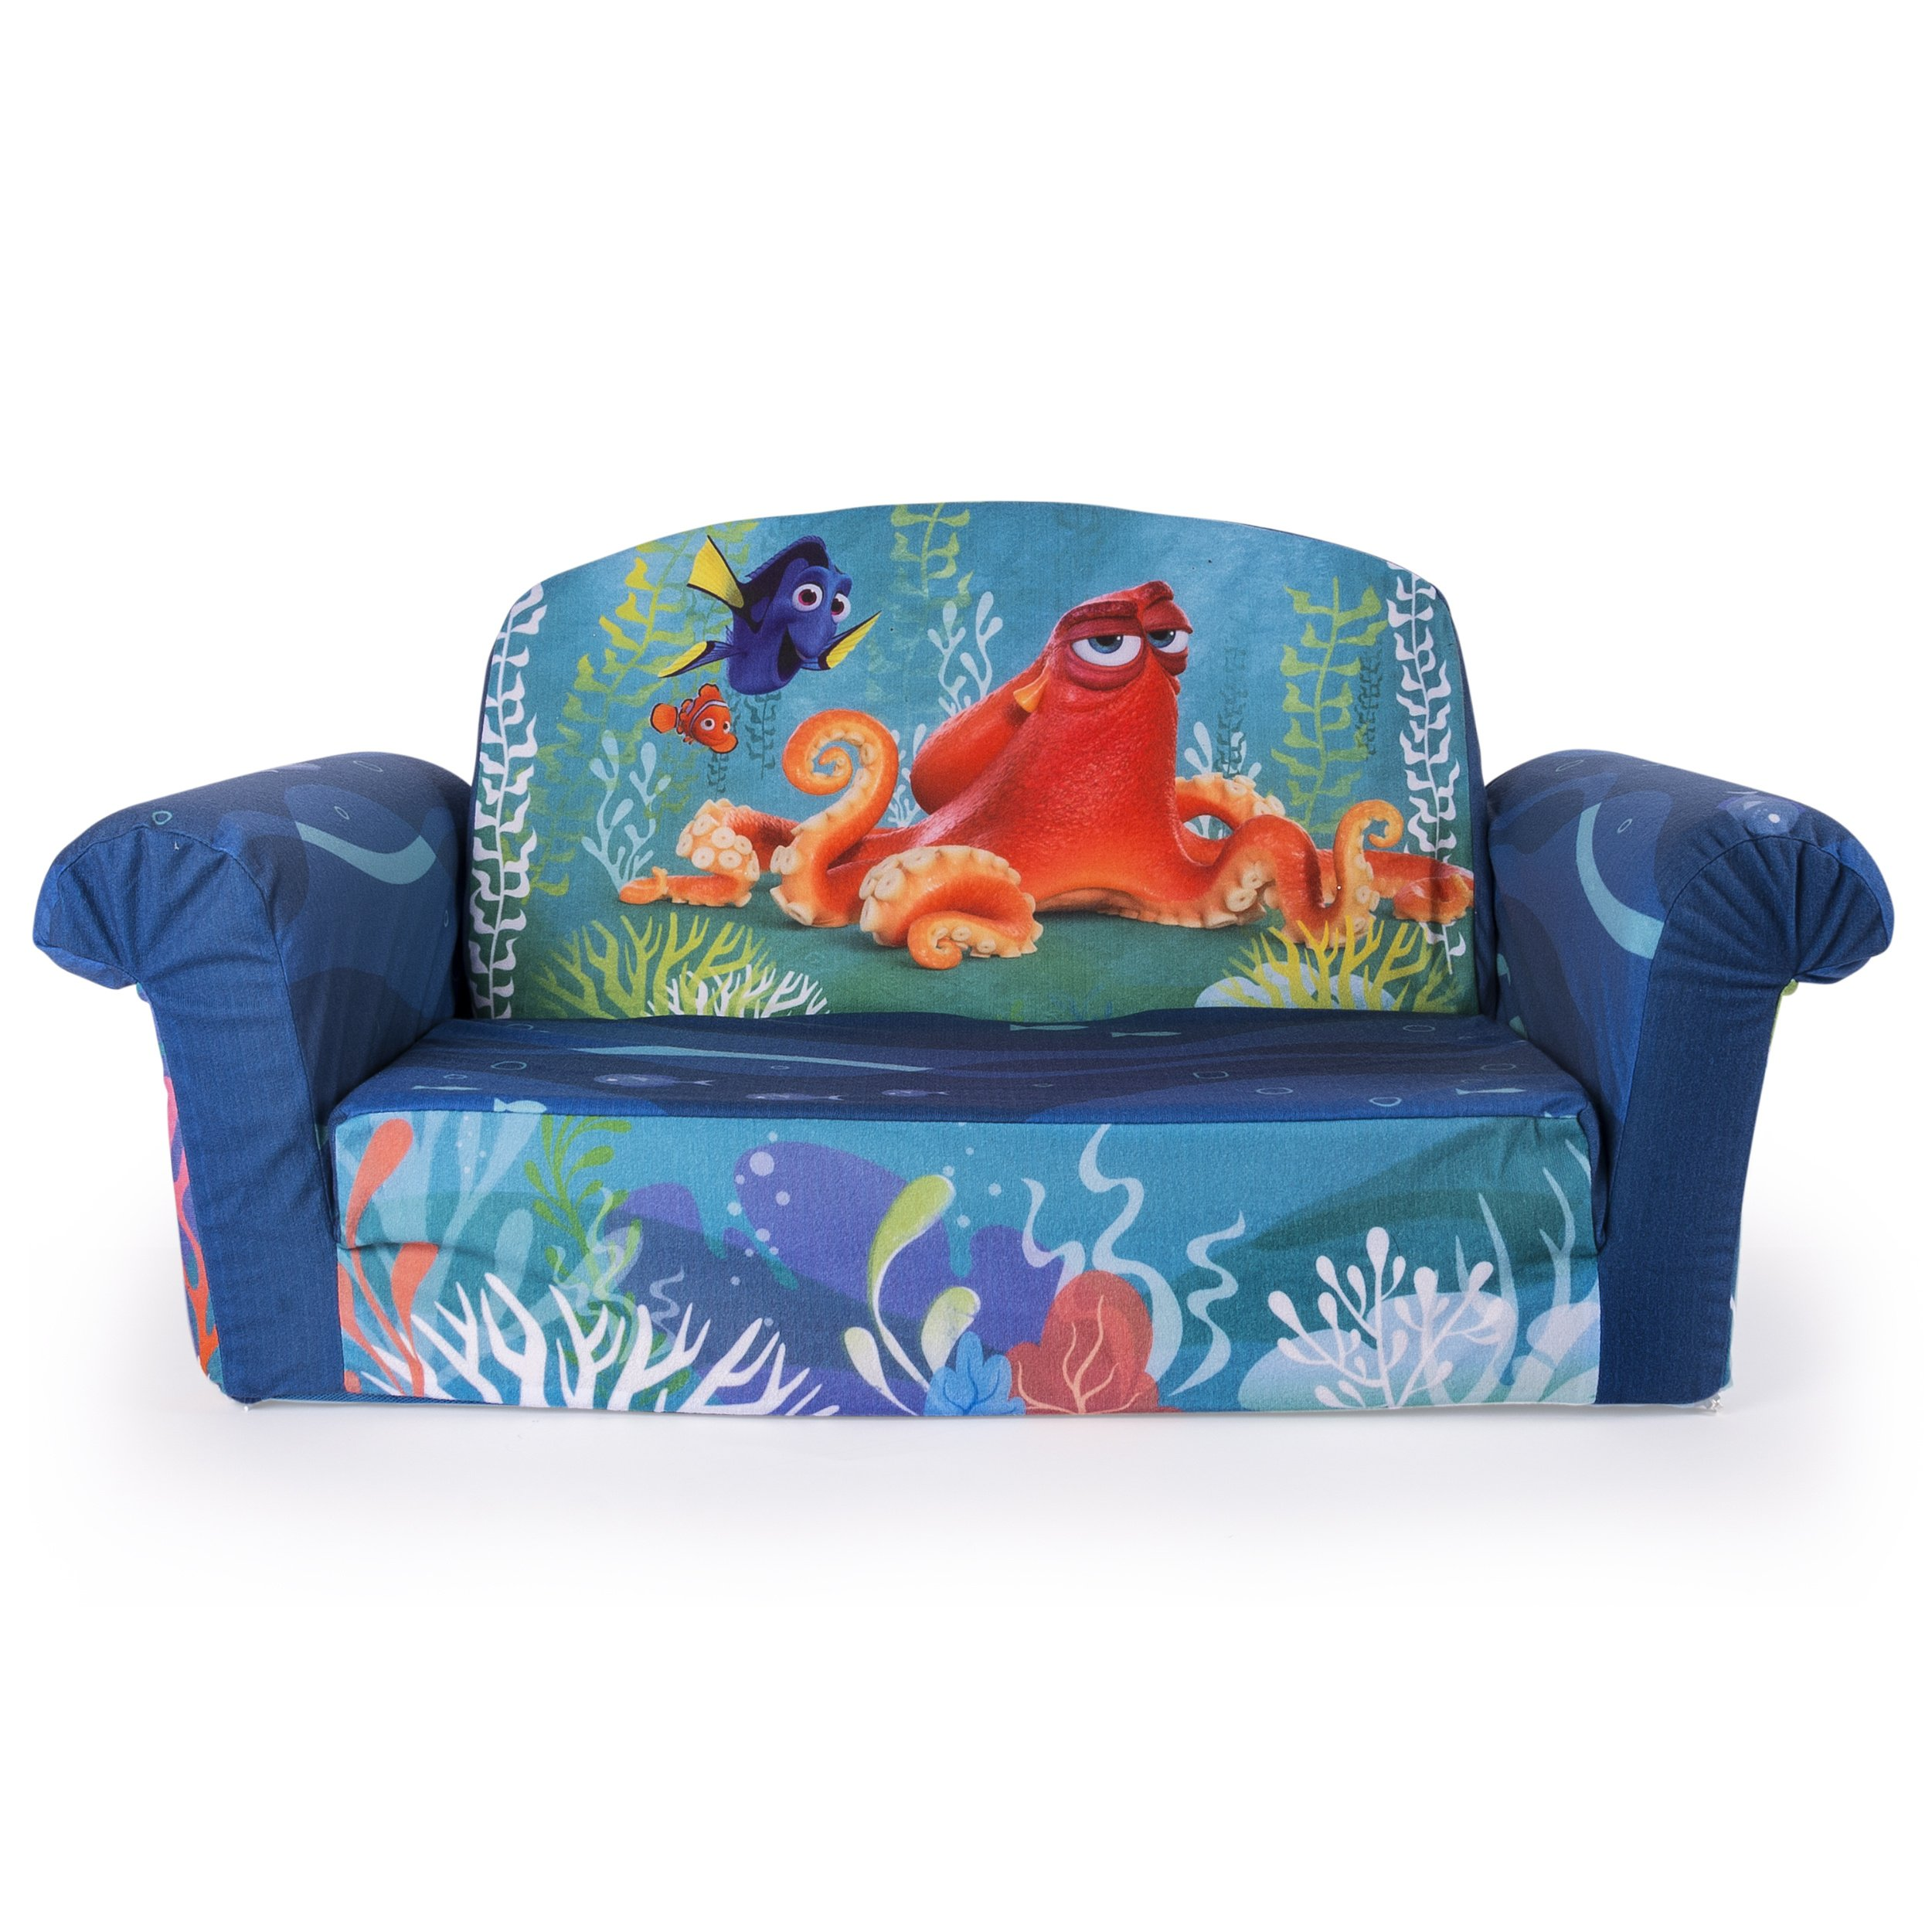 Marshmallow Furniture, Children's 2 in 1 Flip Open Foam Sofa, Disney Pixar Finding Dory, by Spin Master by Marshmallow Furniture